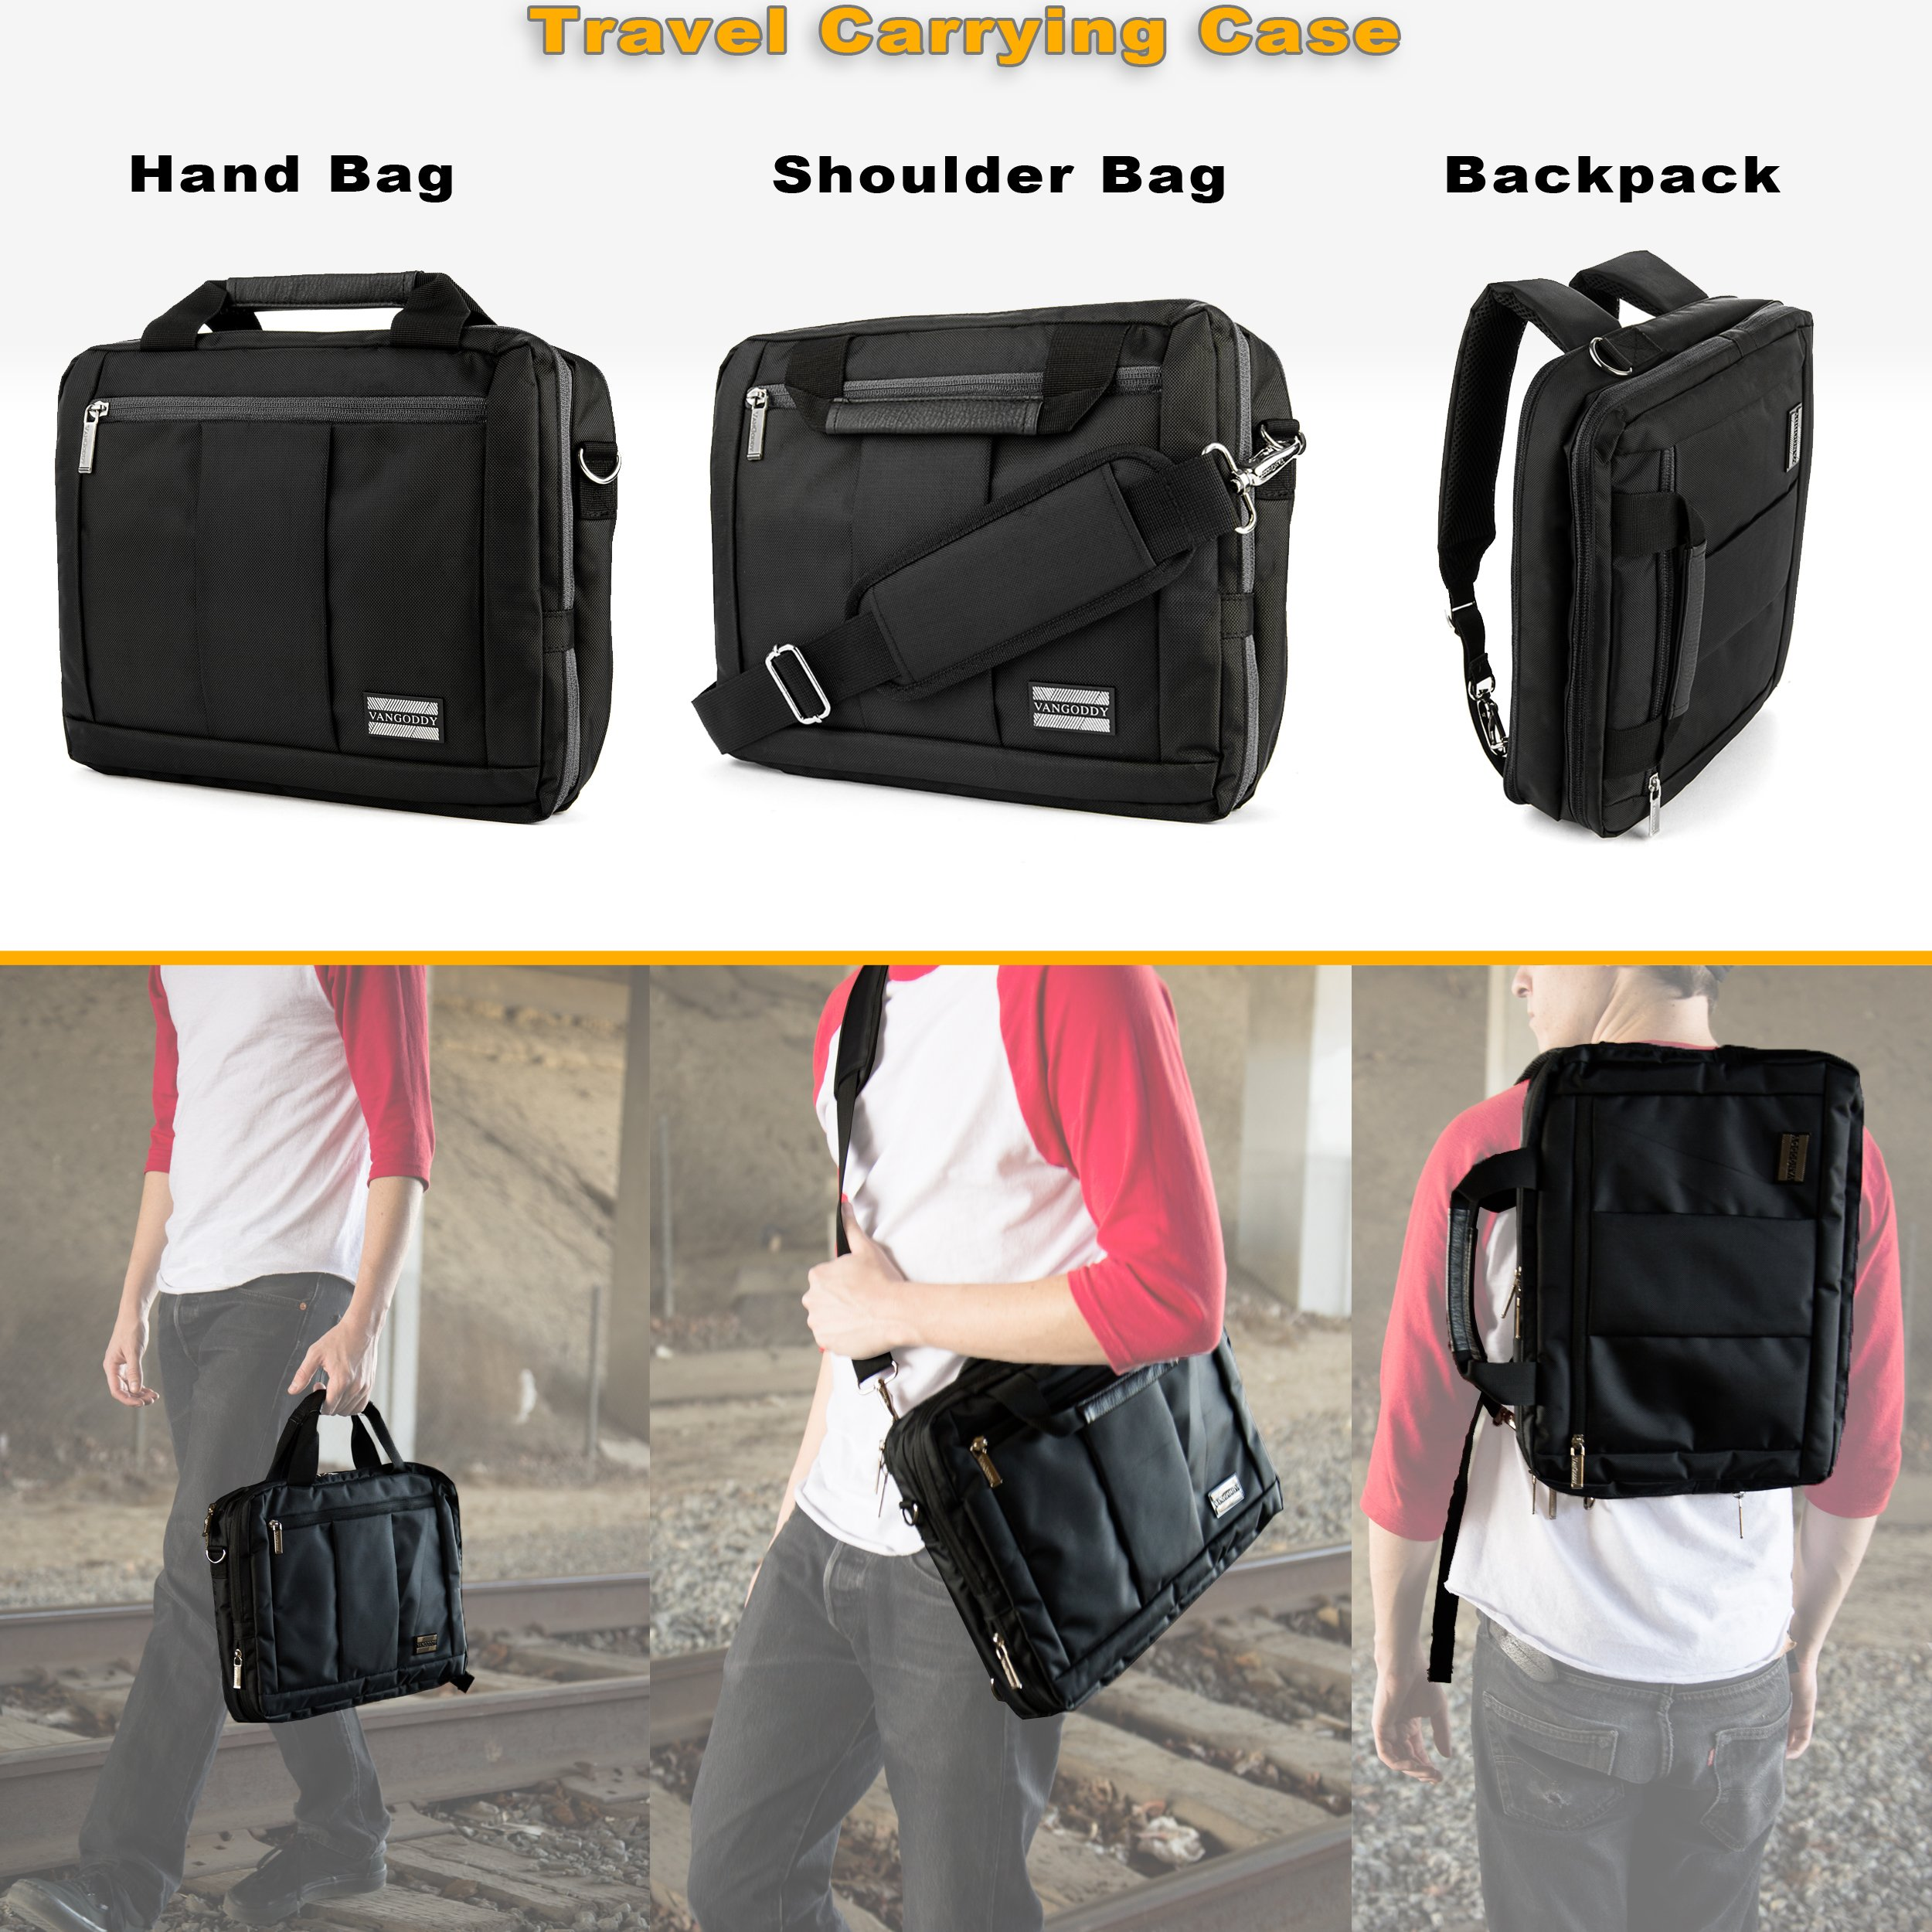 Executive Travel Carrying Bag, Messenger Bag & Backpack For Samsung Galaxy Tab PRO / Galaxy Note PRO 12.2'' Tablet + Pink Bluetooth Suction Speaker by Vangoddy (Image #6)